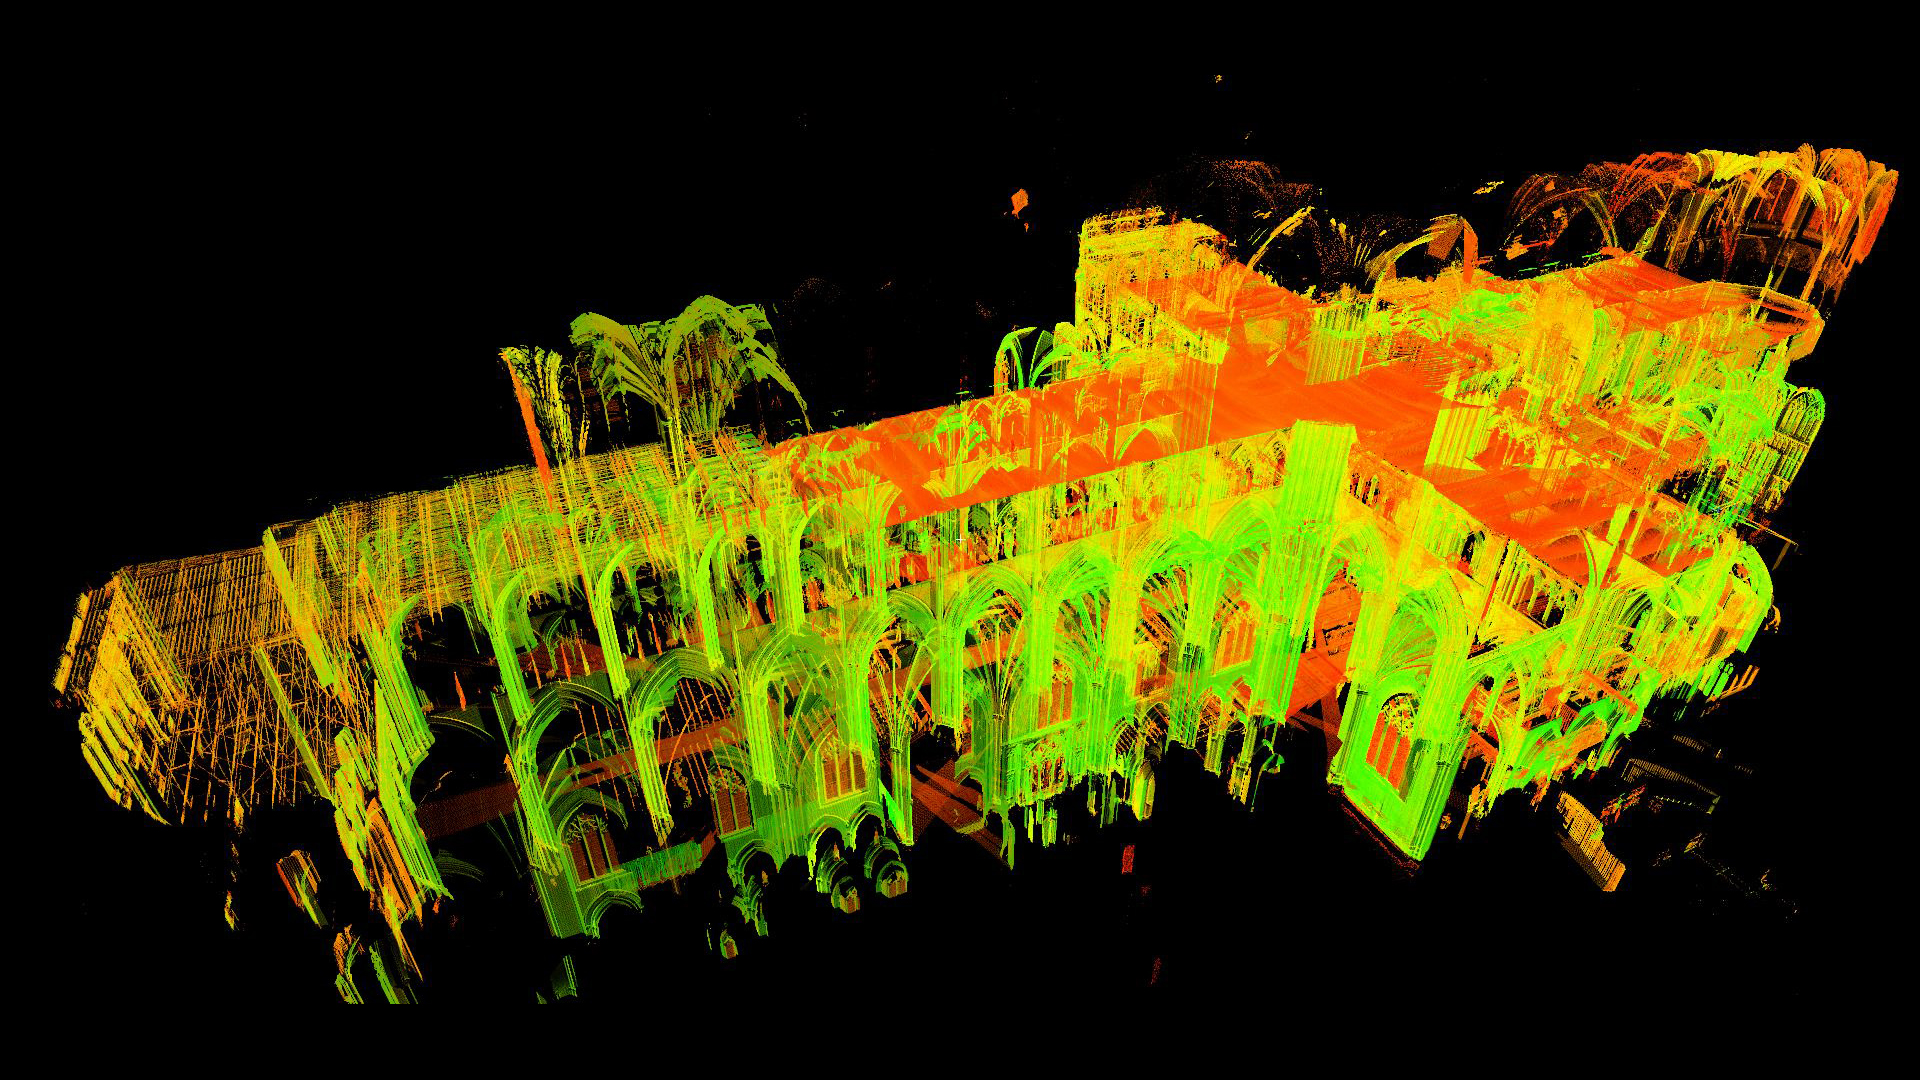 Historian Uses Lasers To Unlock Mysteries Of Gothic Cathedrals